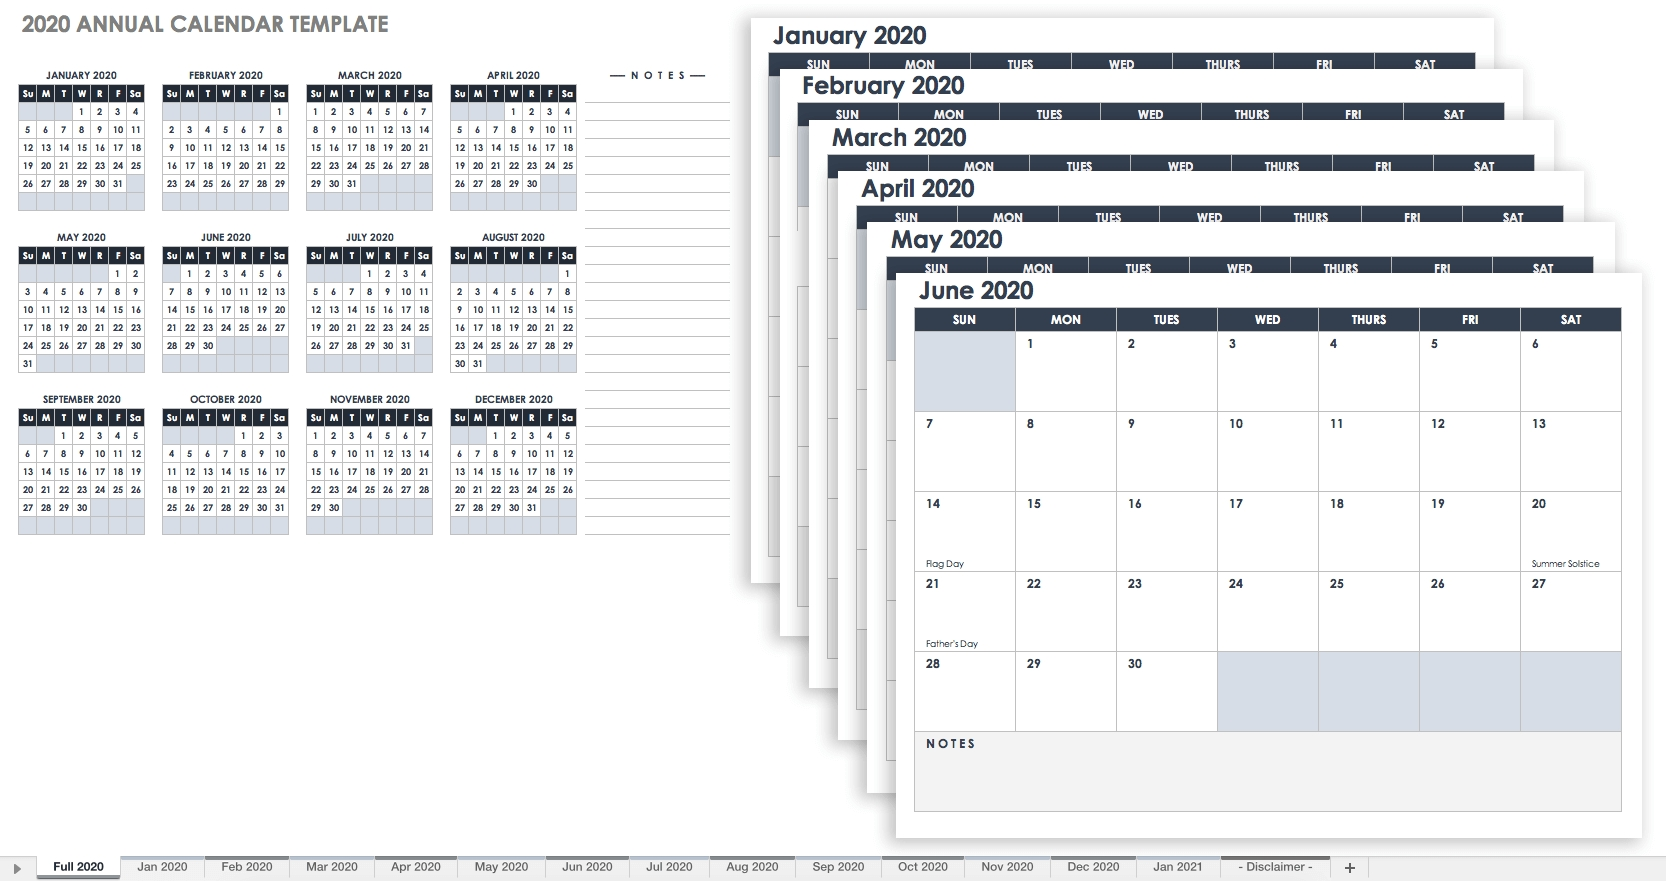 Free Excel Calendar Templates in Calender 2020 Template Monday To Sunday